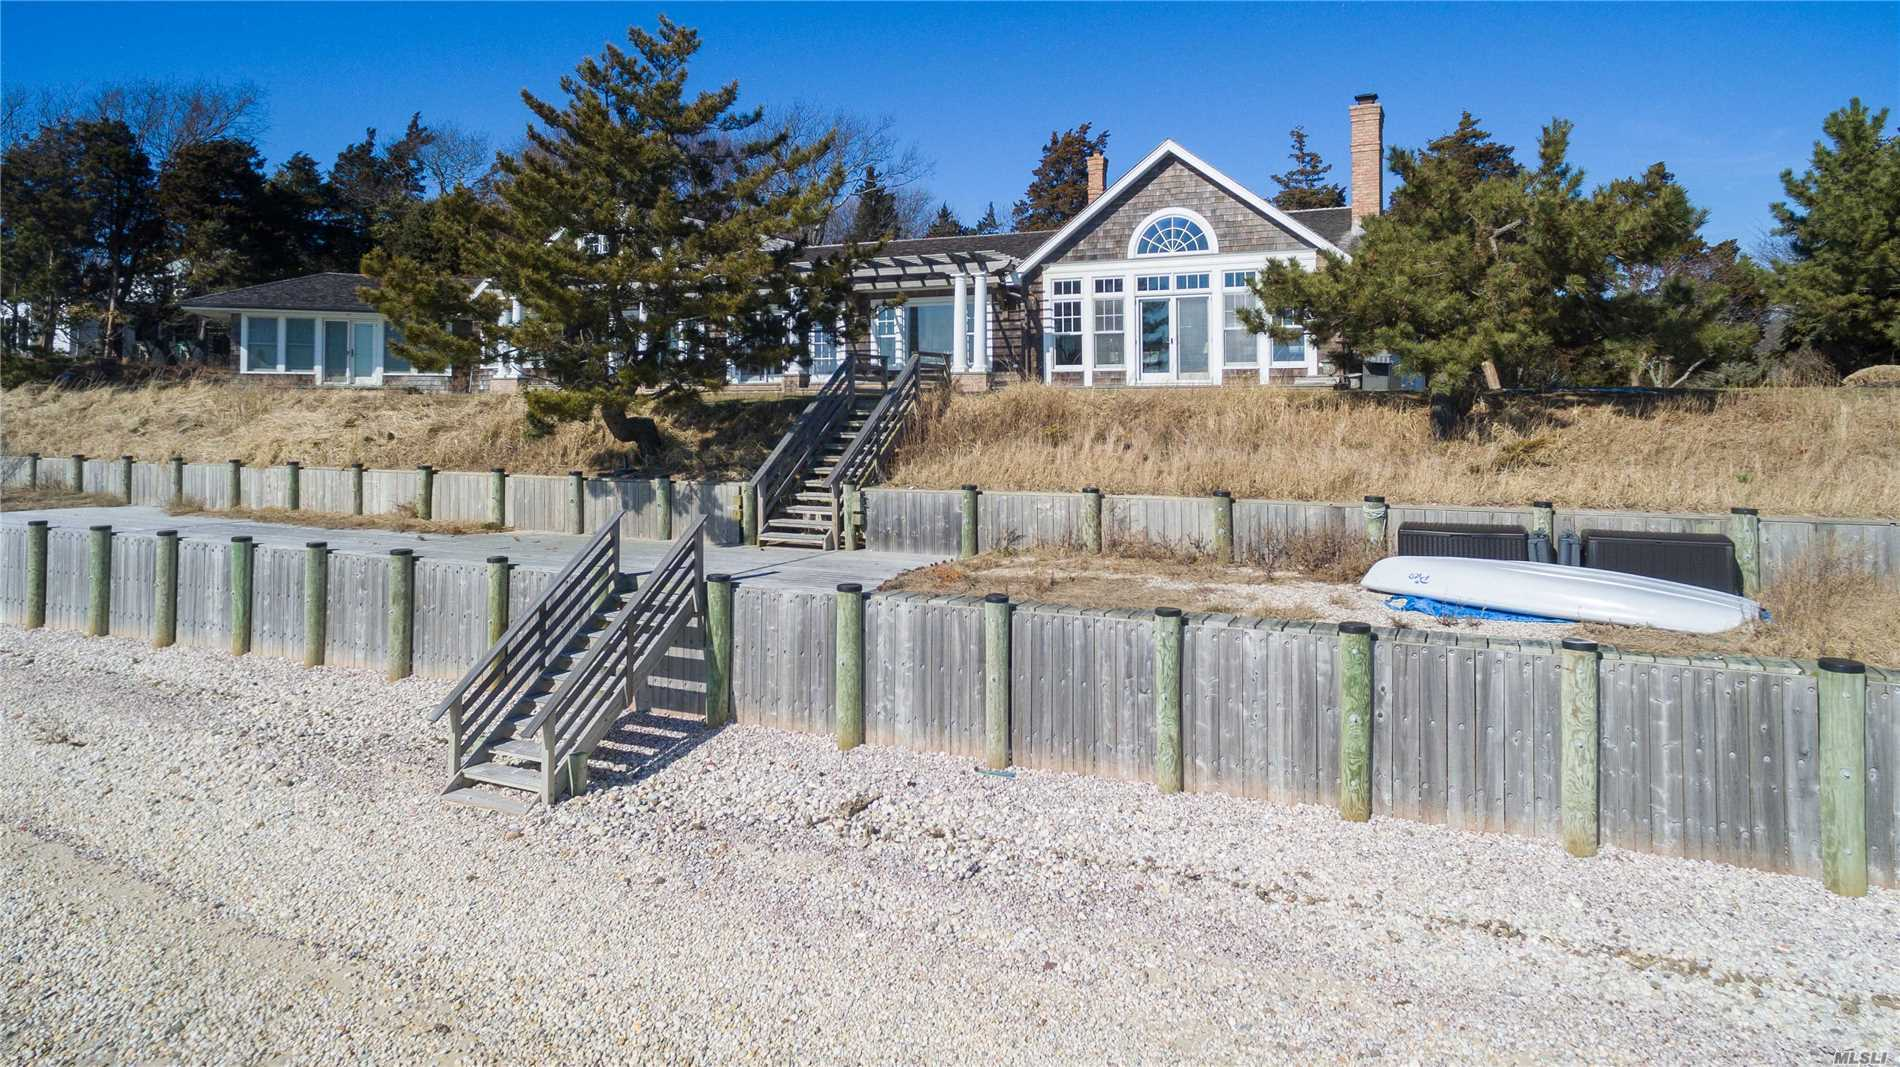 1st Time Offered. Gorgeous Nantucket Style Home. Gut Renovated. 200' Direct Waterfront And Beach With Incredible Views From All Principal Rooms. Slate Patios, Beach Decks And Al Fresco Dining - All With Direct Water Access. Outdoor Shower And Yards Complete The Best In Coastal Living. 5 Bedrooms(King, 3 Queens & 1 Full)